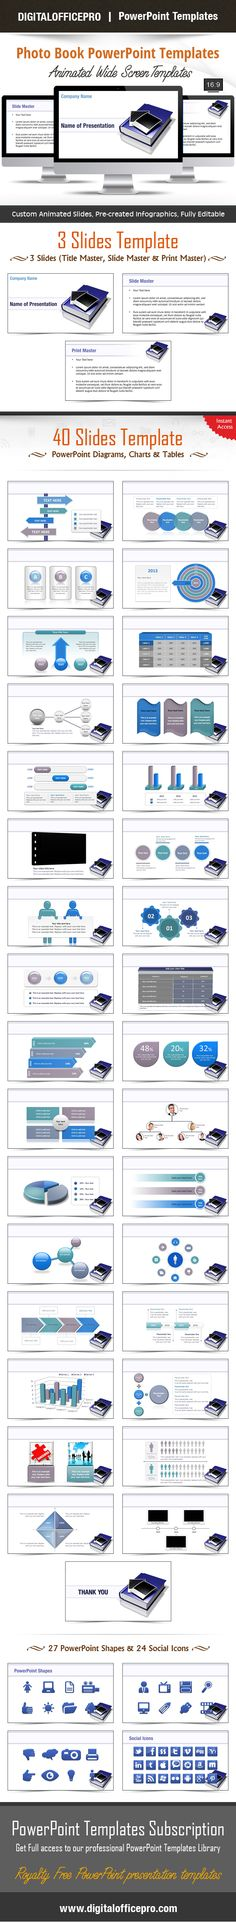 Impress and Engage your audience with Photo Book PowerPoint Template and Photo Book PowerPoint Backgrounds from DigitalOfficePro. Each template comes with a set of PowerPoint Diagrams, Charts & Shapes and are available for instant download.